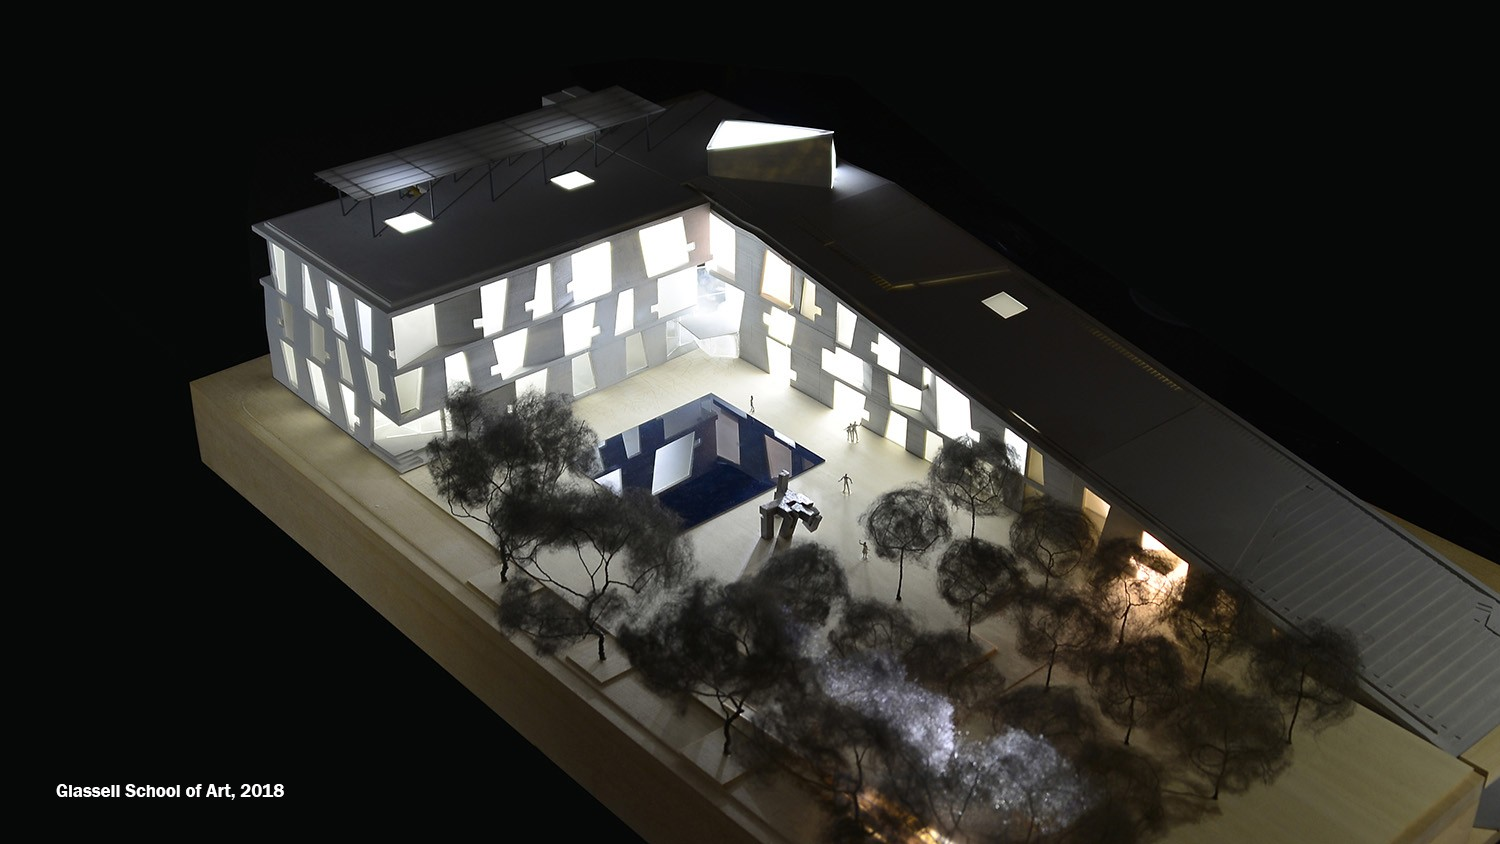 https://s3.us-east-2.amazonaws.com/steven-holl/uploads/projects/project-images/StevenHollArchitects_Glassell_DSC1582_WH.jpg